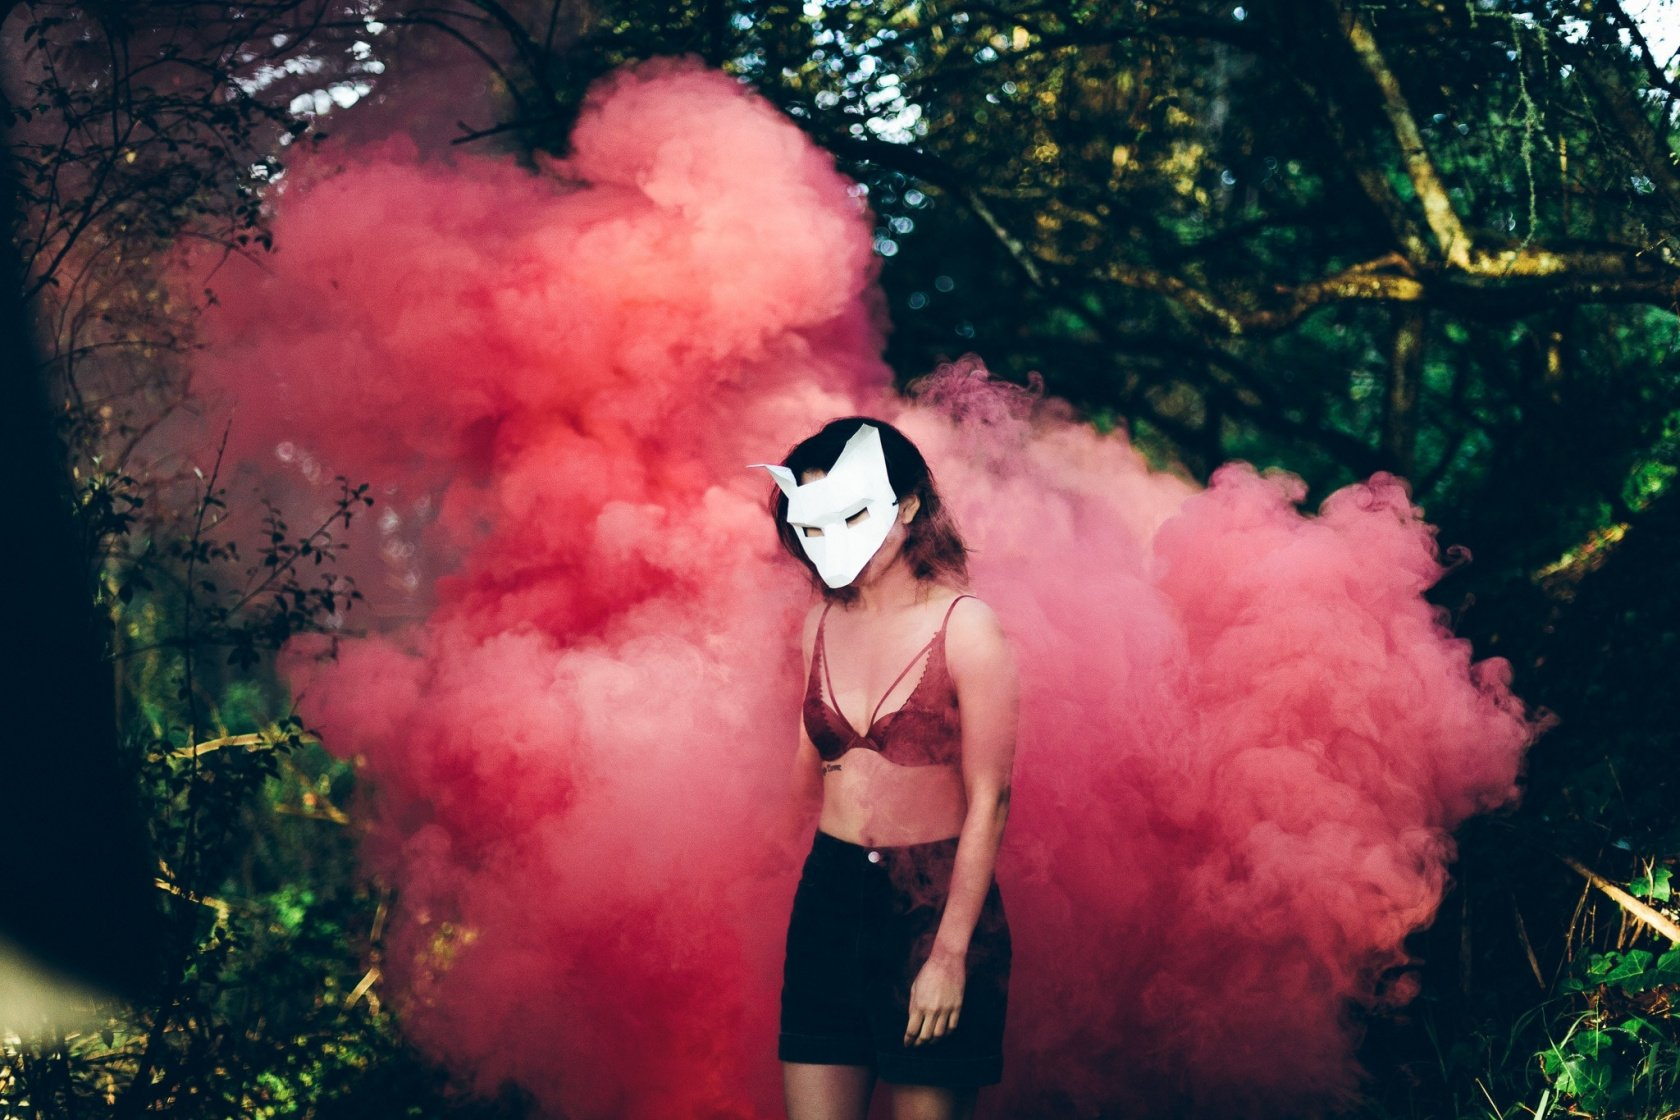 Smoke Bomb Photography You Can Master Quickly and Easily Image5